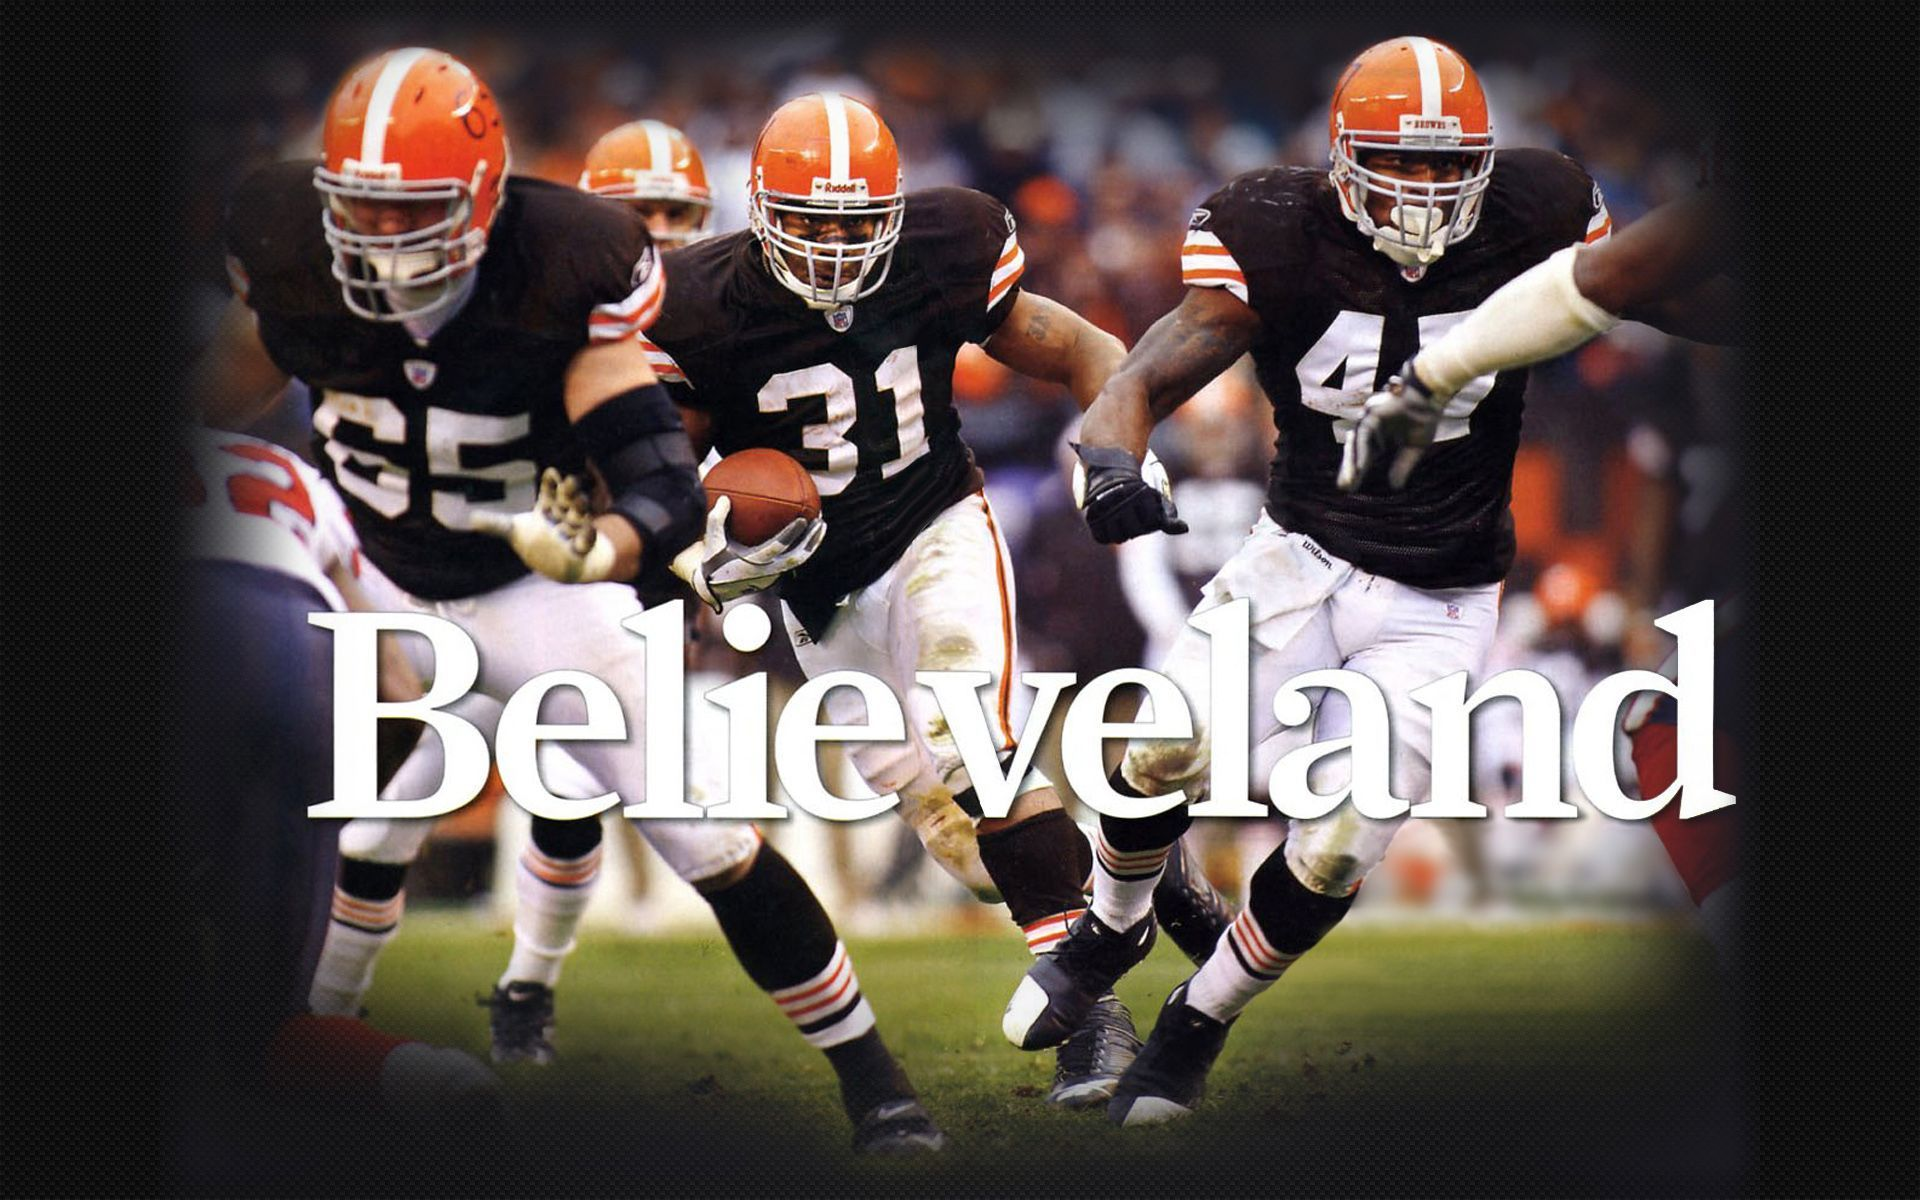 1000+ images about Browns on Pinterest | Cleveland Browns, The ...